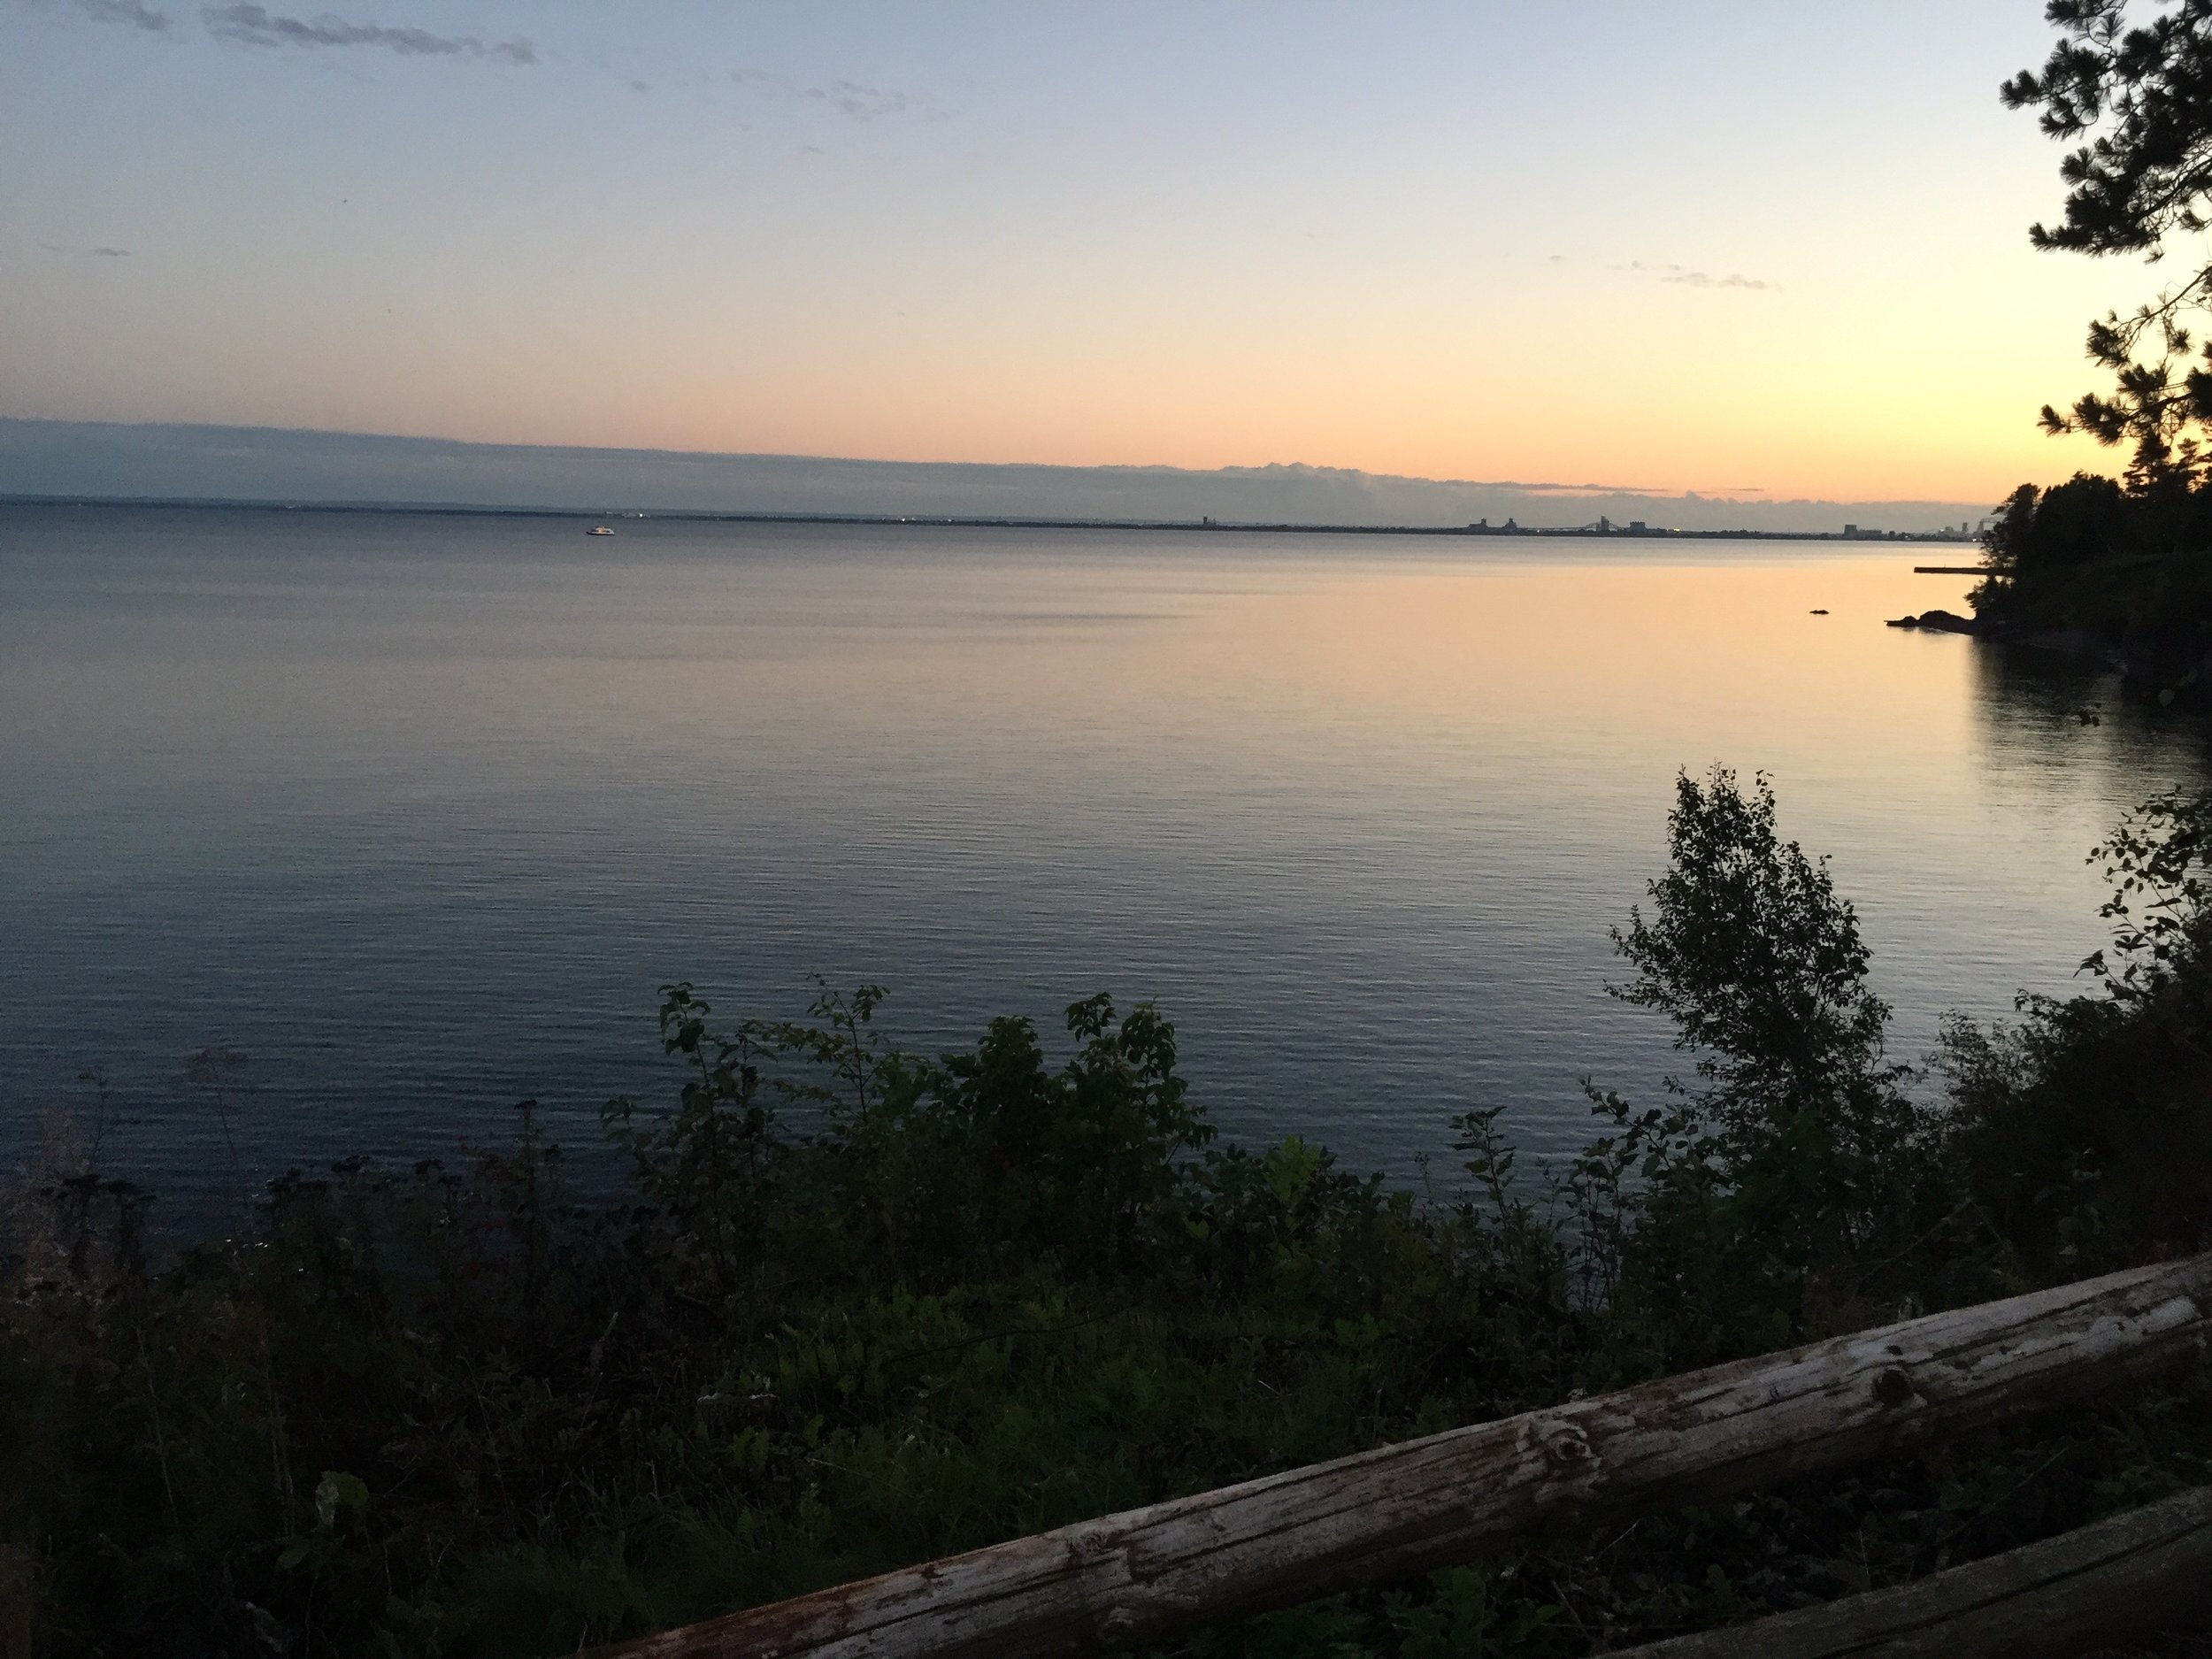 Sunset over Lake Superior from Duluth, Minnesota